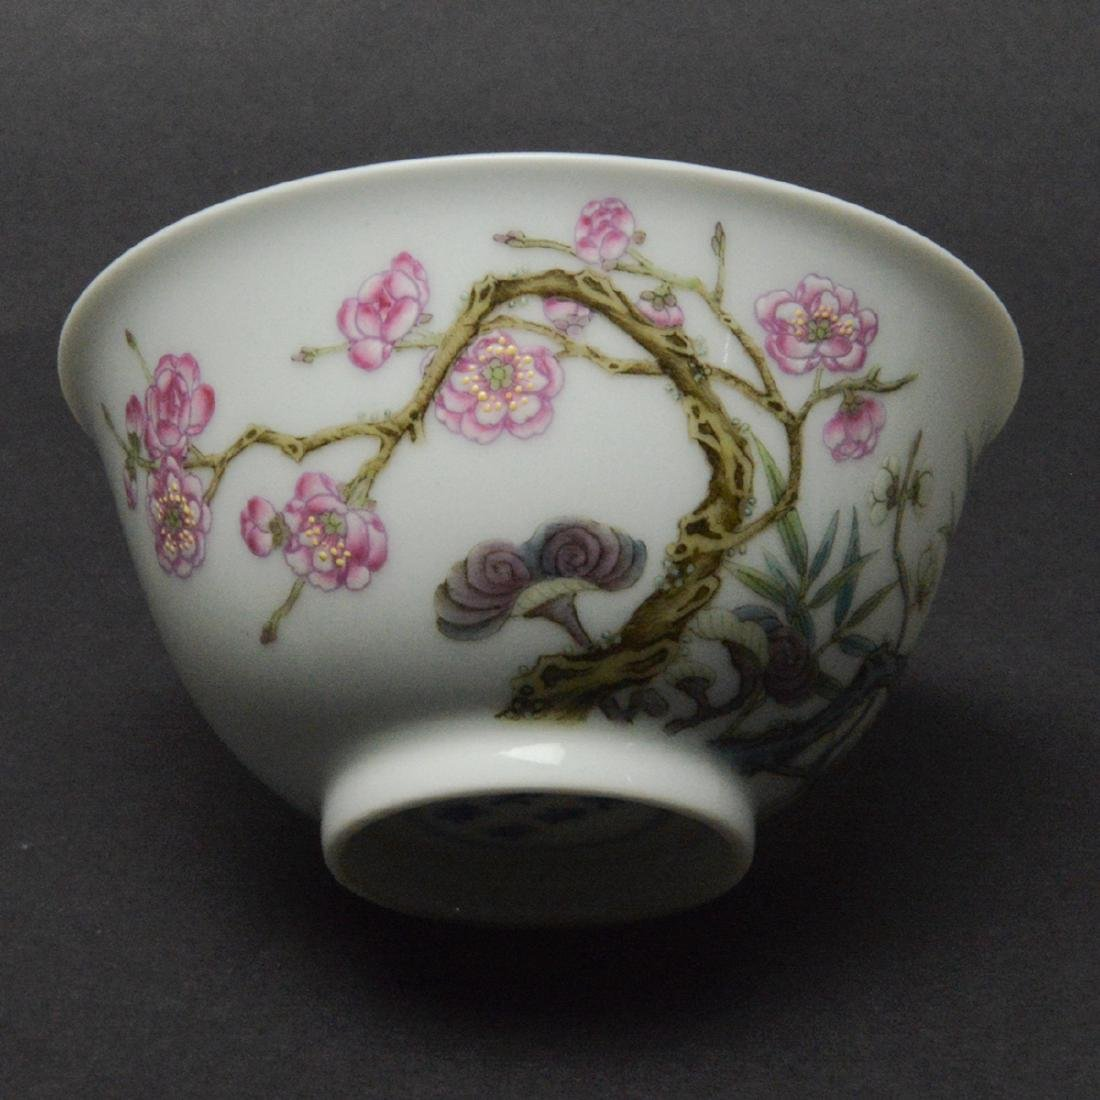 CHINESE FAMILLE ROSE PORCELAIN CUP - 4